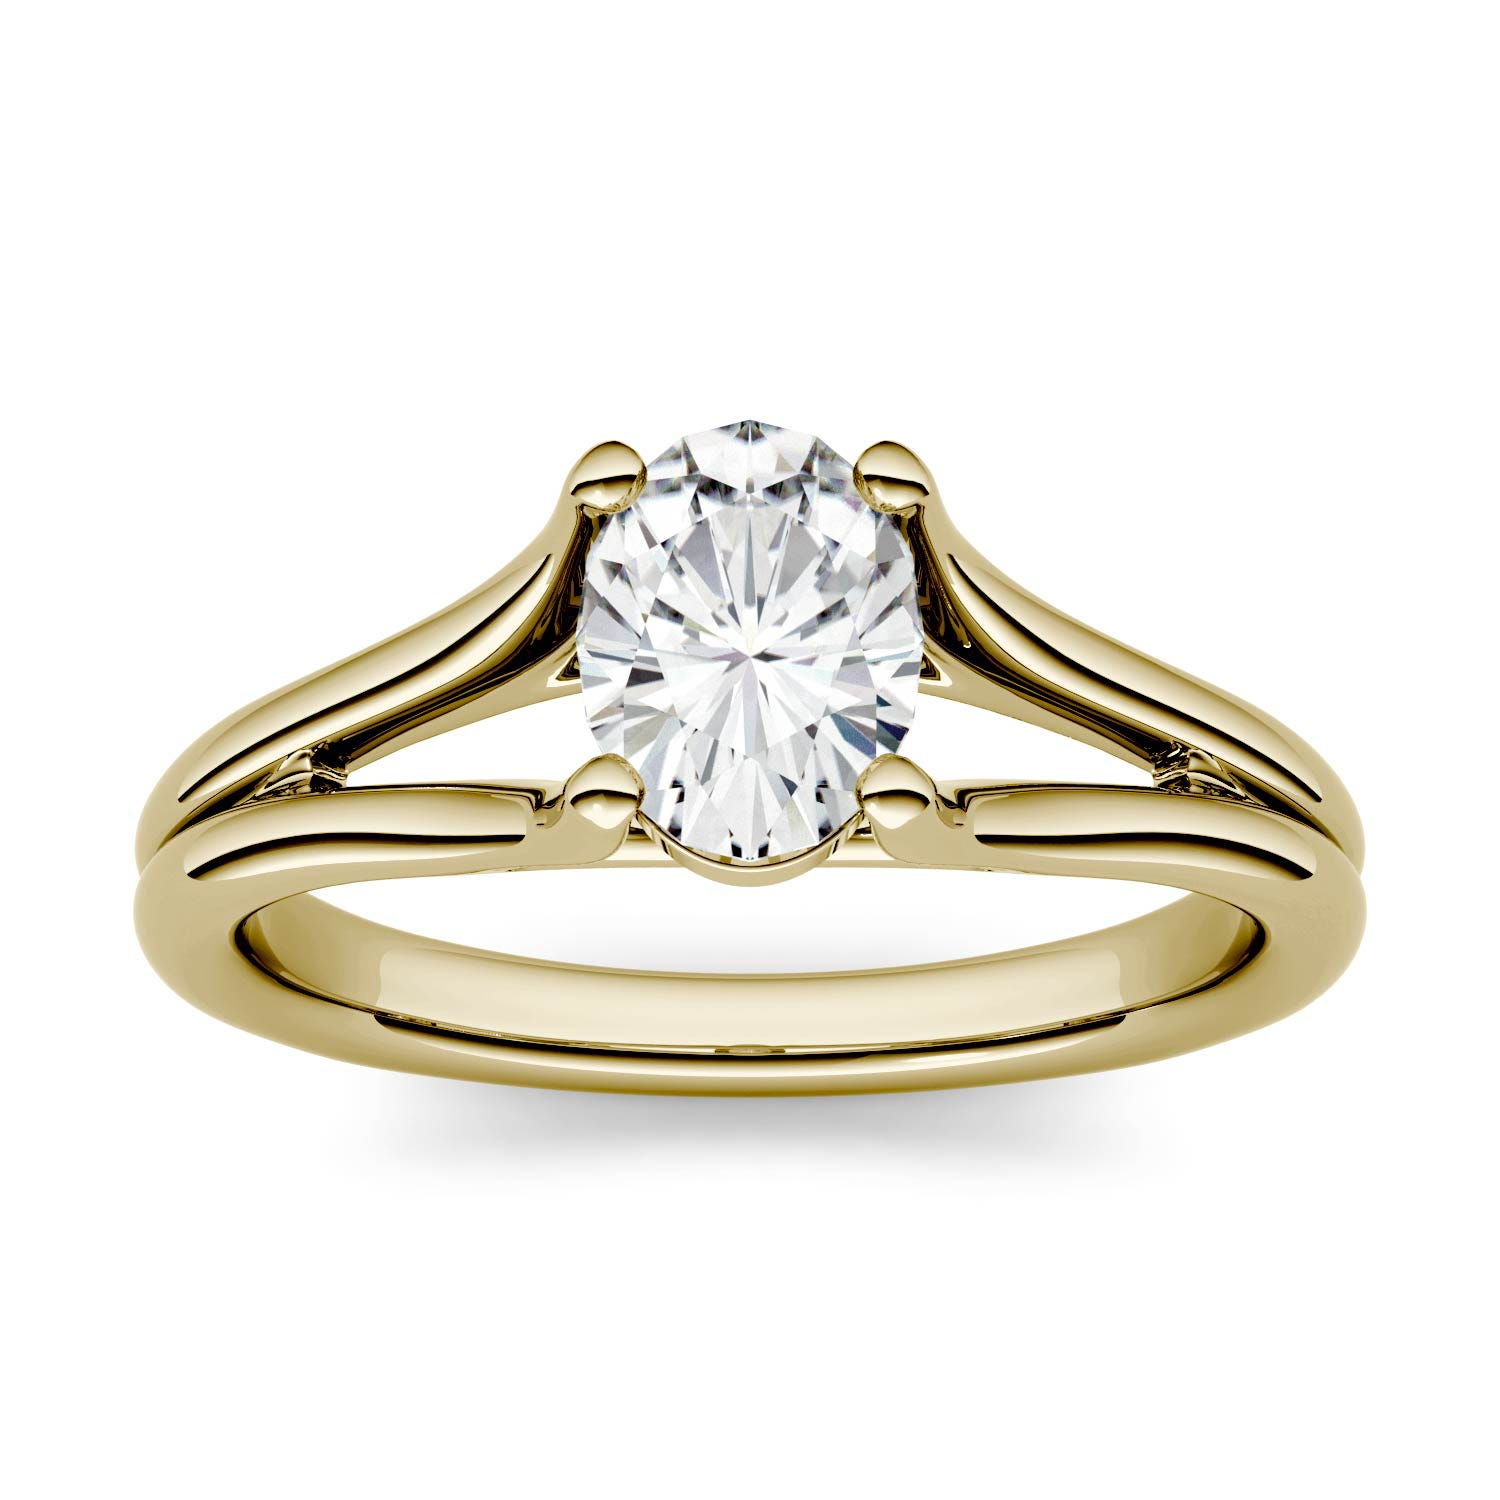 Oval 0.84cttw DEW Moissanite Split Shank Solitaire Engagement Ring in 14K Yellow Gold 500122